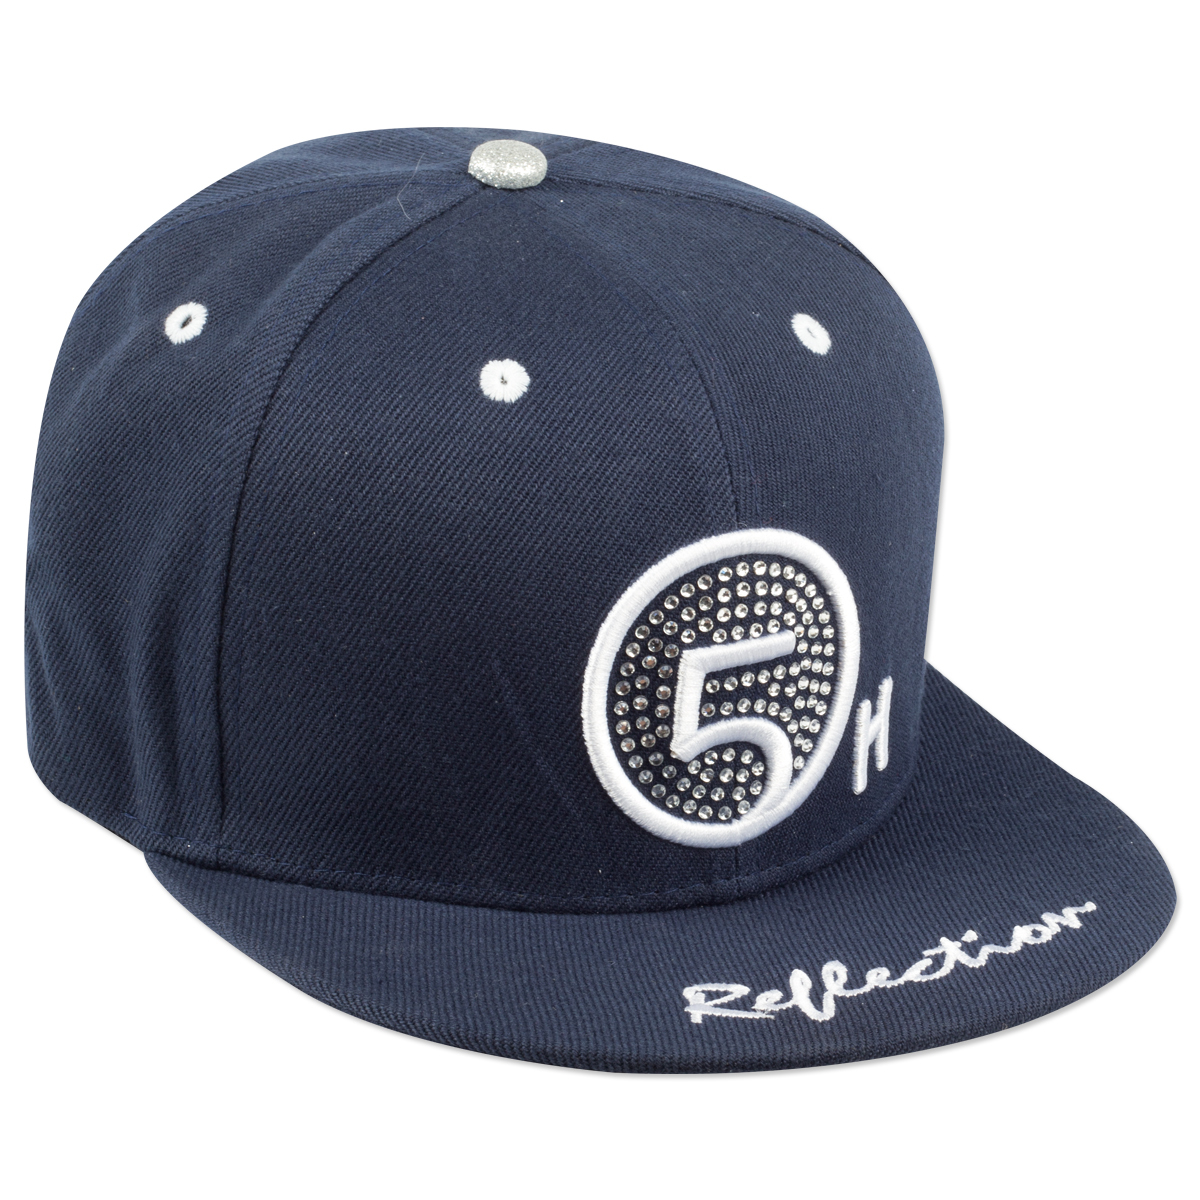 Fifth Harmony Reflection Snapback Hat